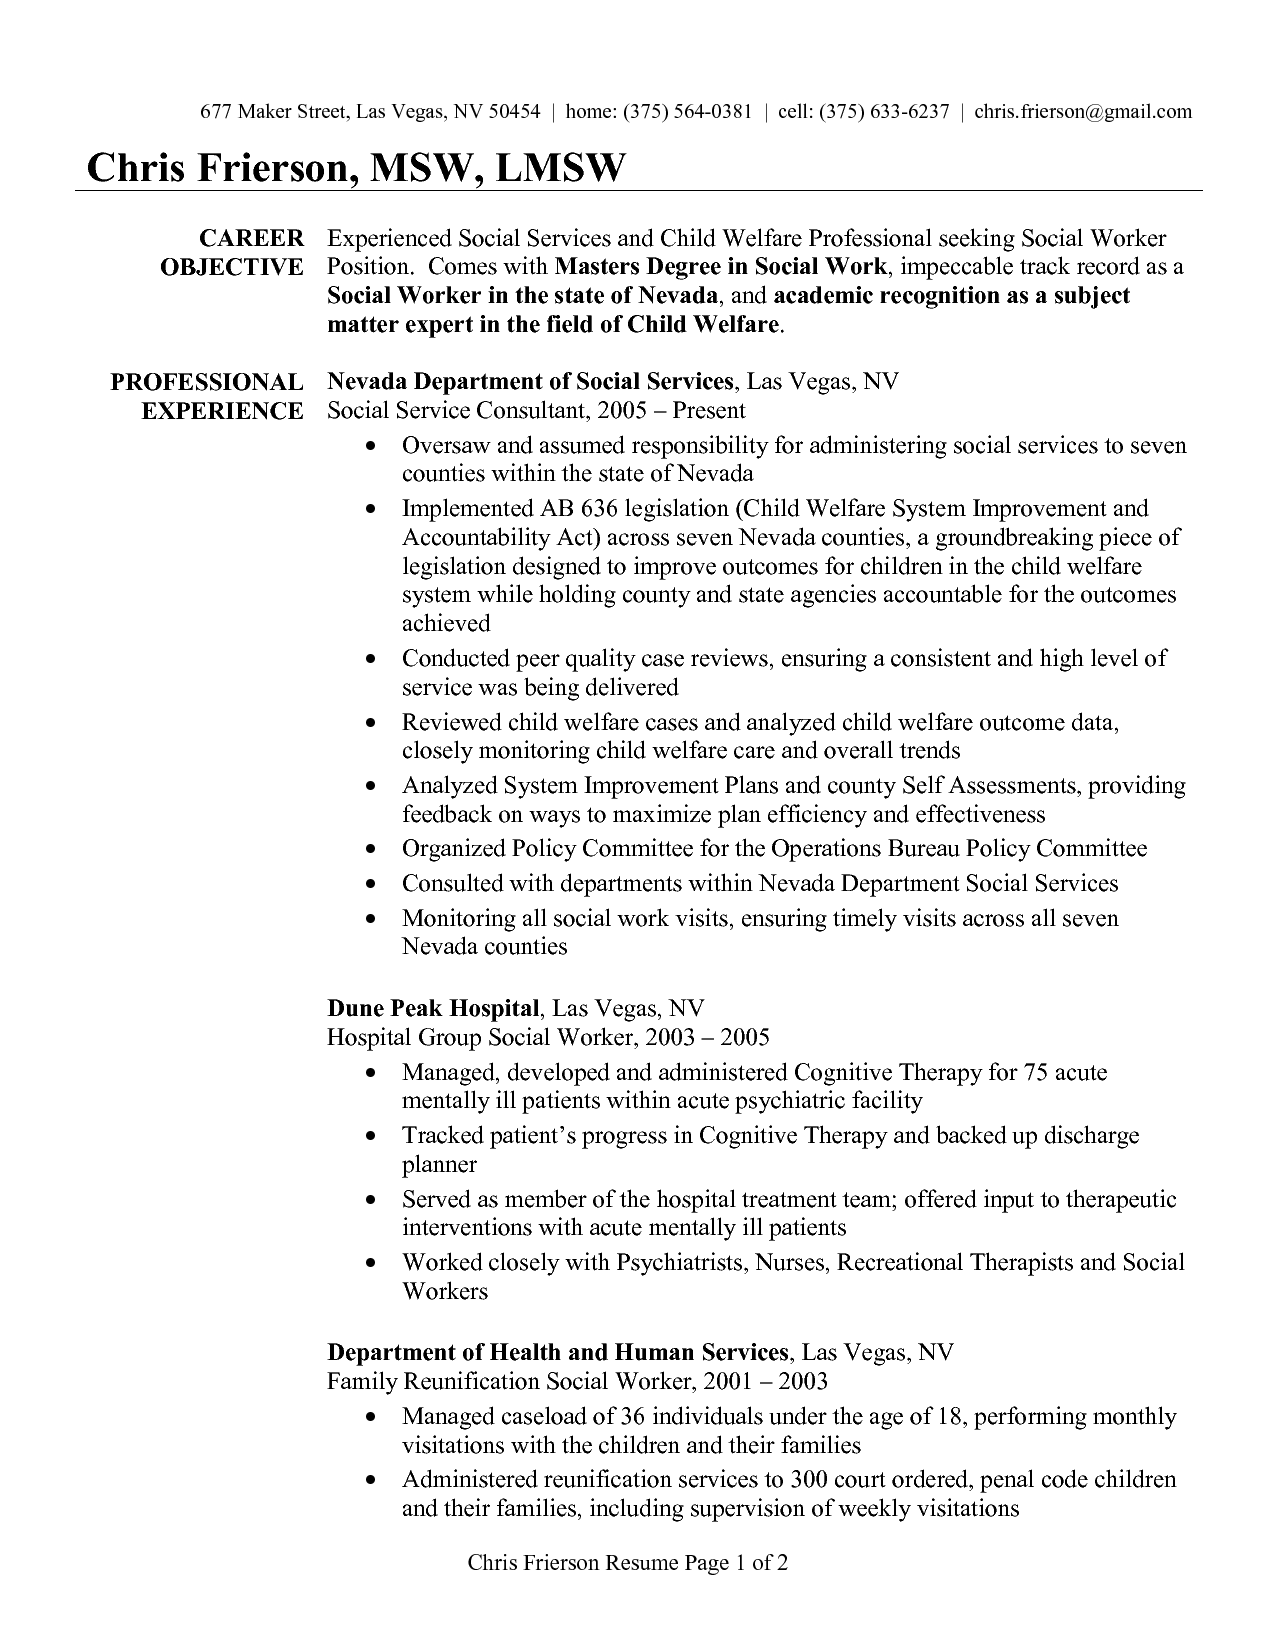 resume objective examples for warehouse - Sample Resume With Objectives